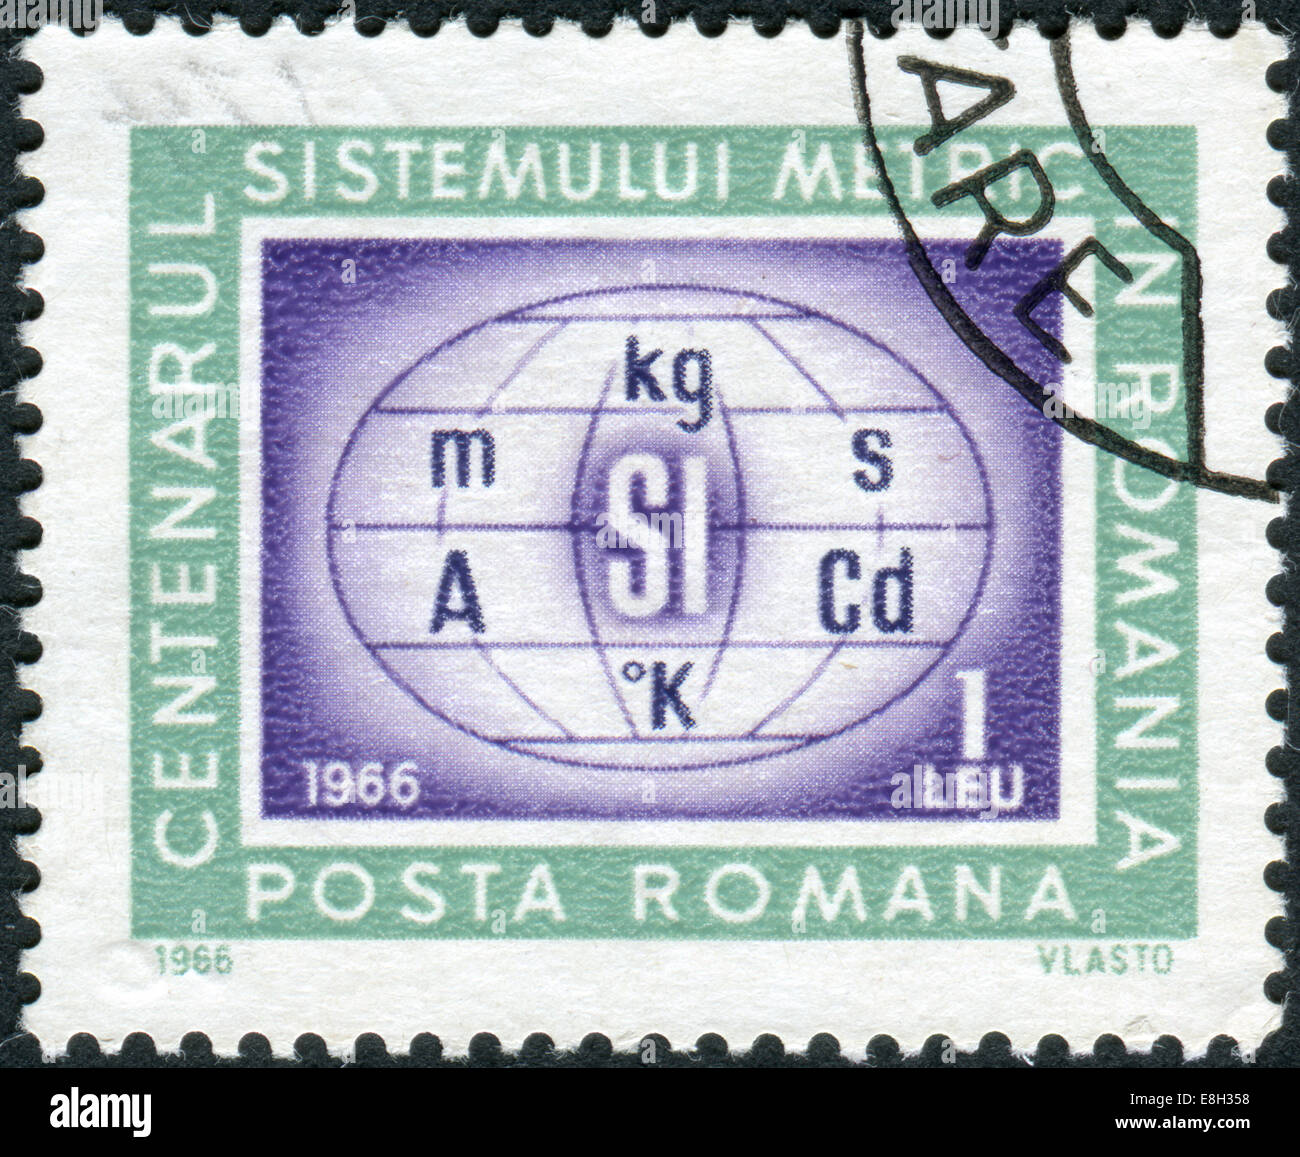 Postage stamp printed in Romania, dedicated to the centenary of the metric system in Romania is shown Metric system - Stock Image